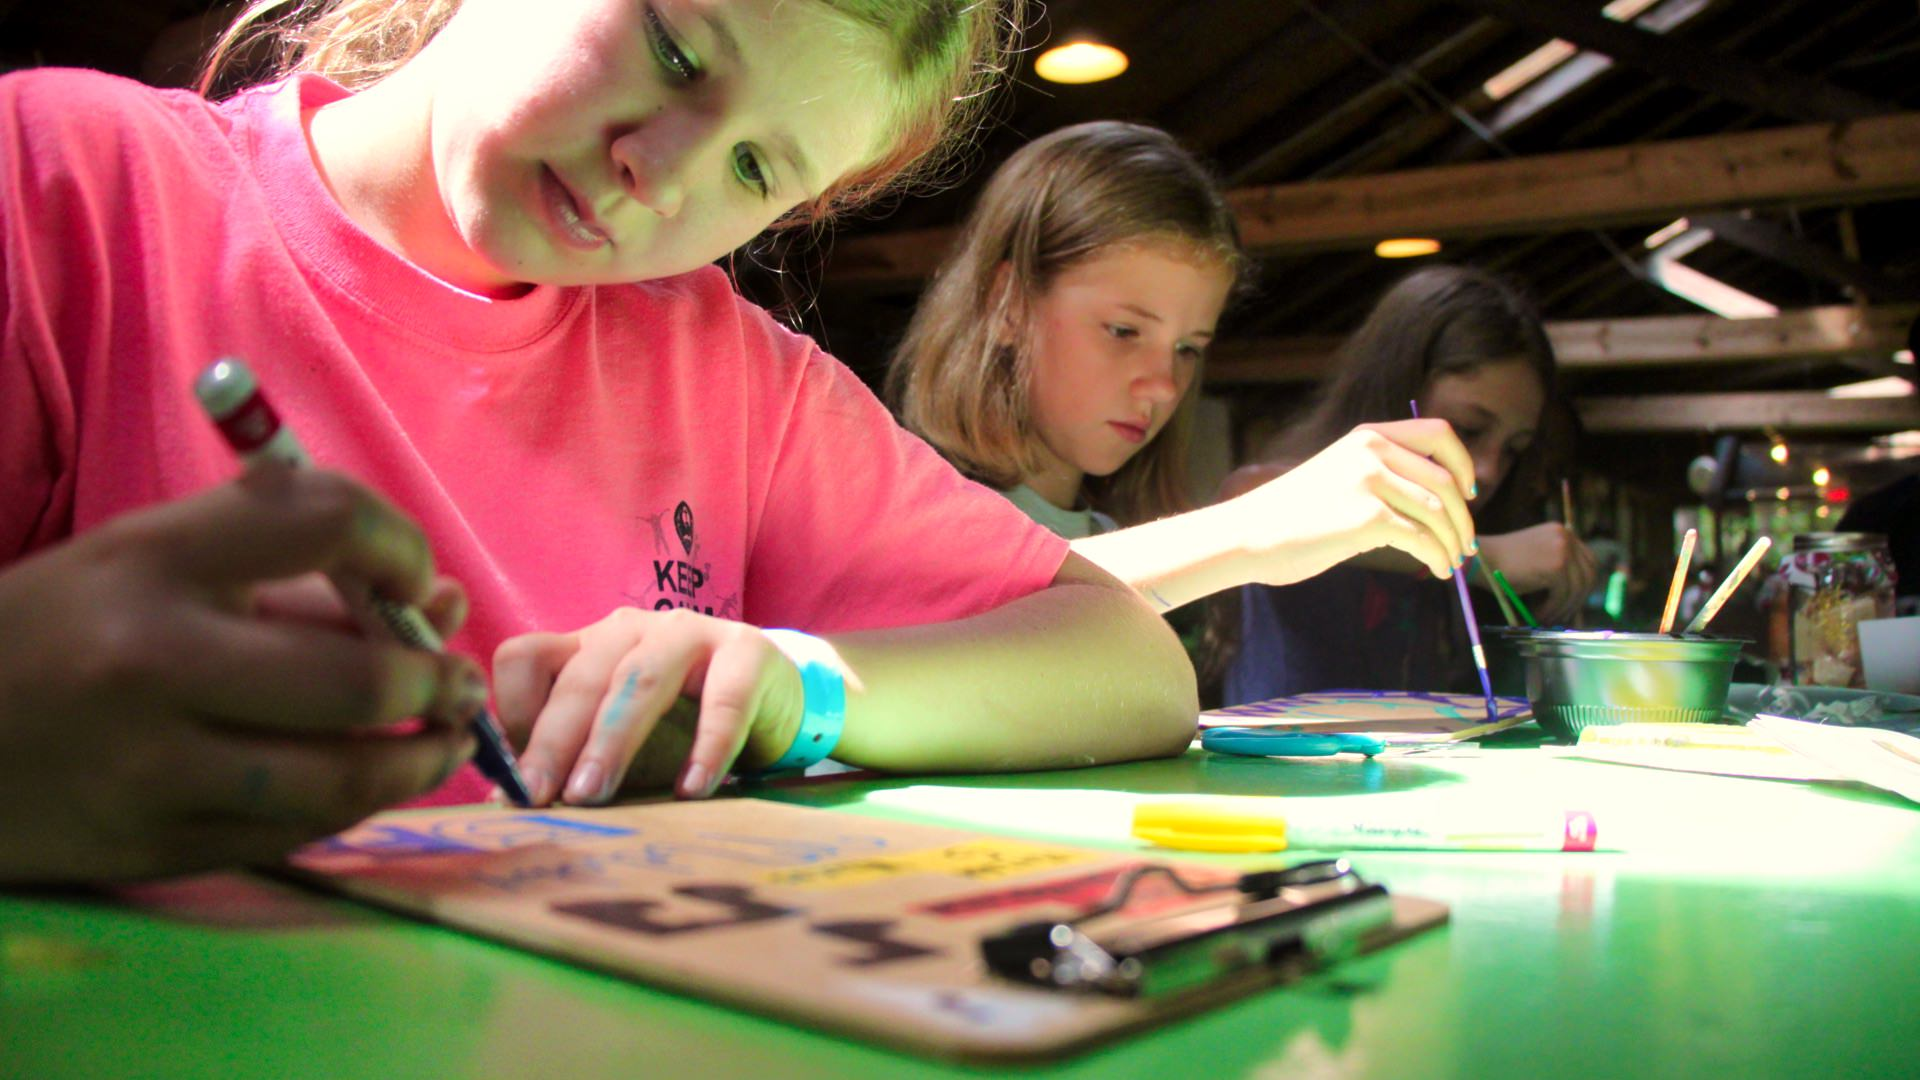 kids painting at summer camp